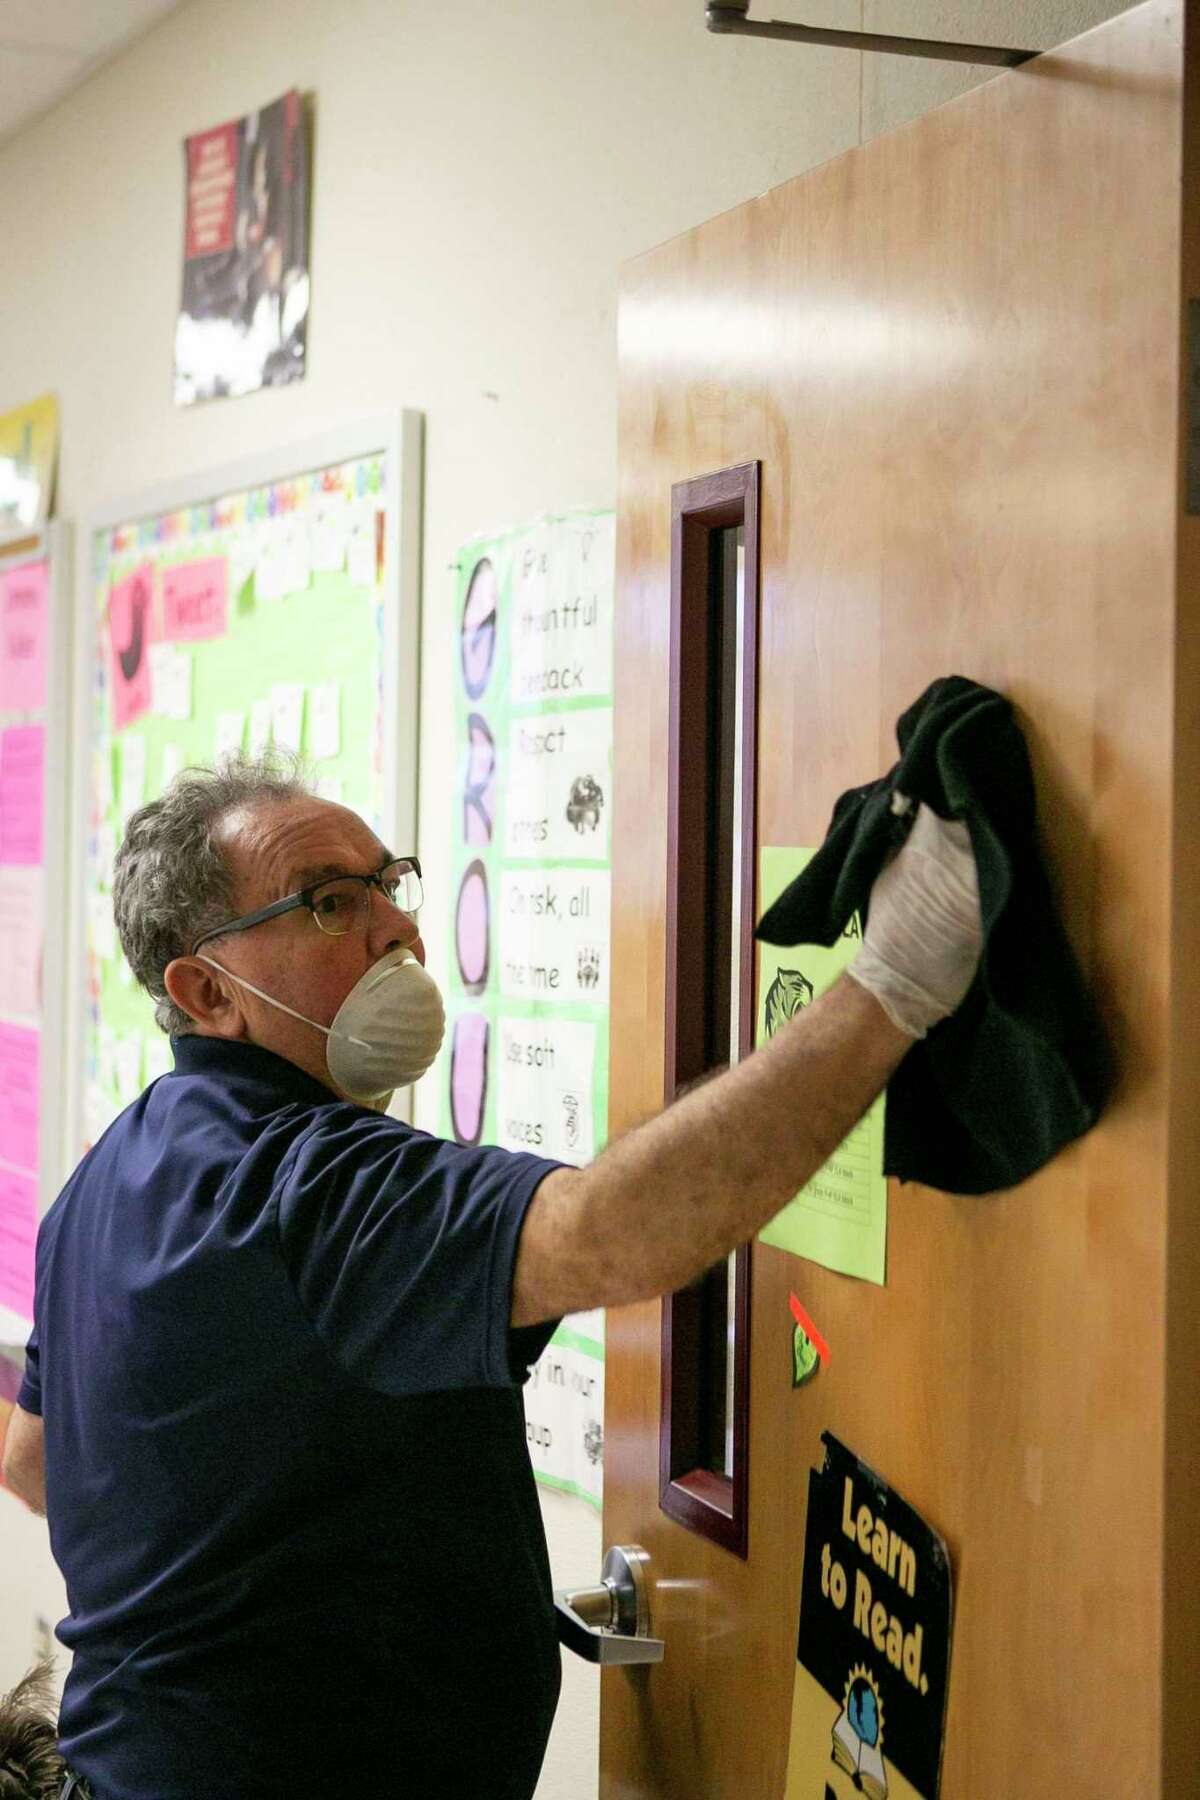 Oscar Marin cleans a classroom door to remove any possibility of the coronavirus on surfaces at Dolph Briscoe Middle School in San Antonio on March 9, 2020.